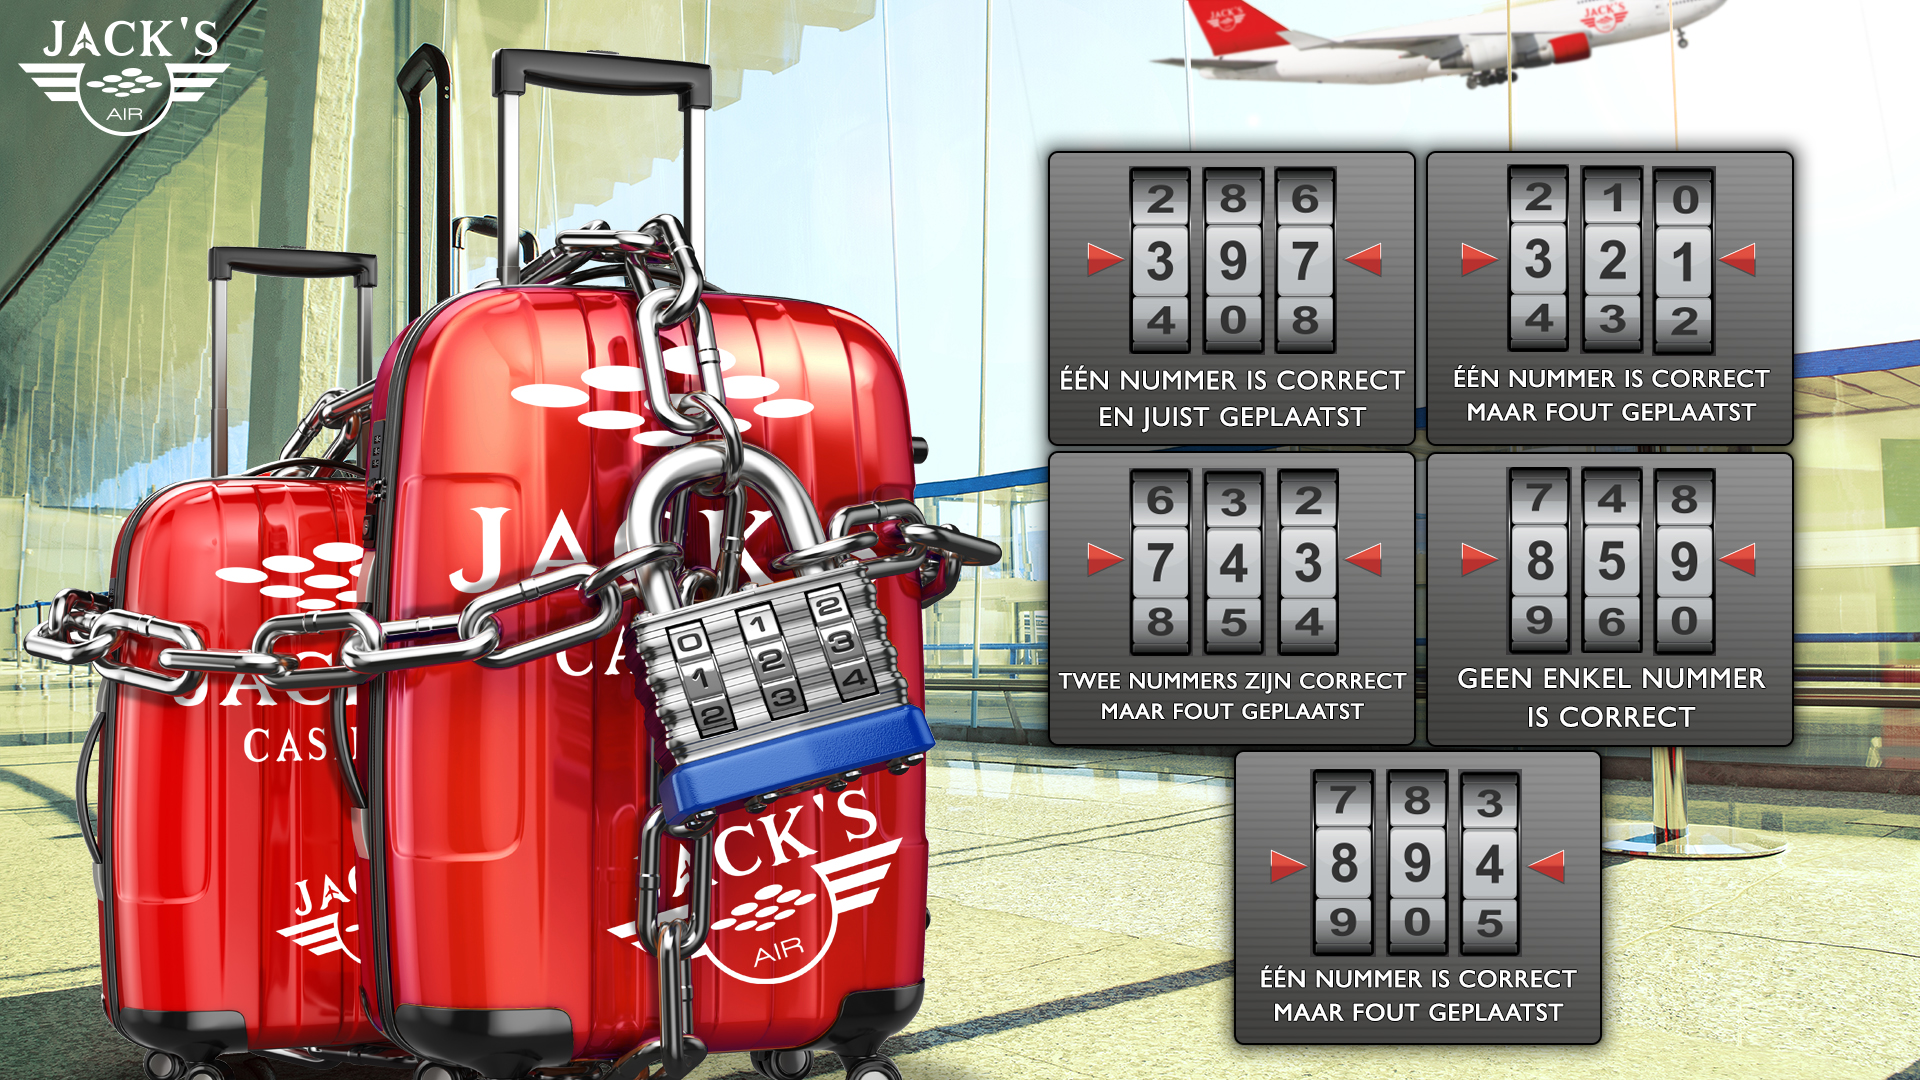 Kraak de Koffer van Jack's Casino - Game